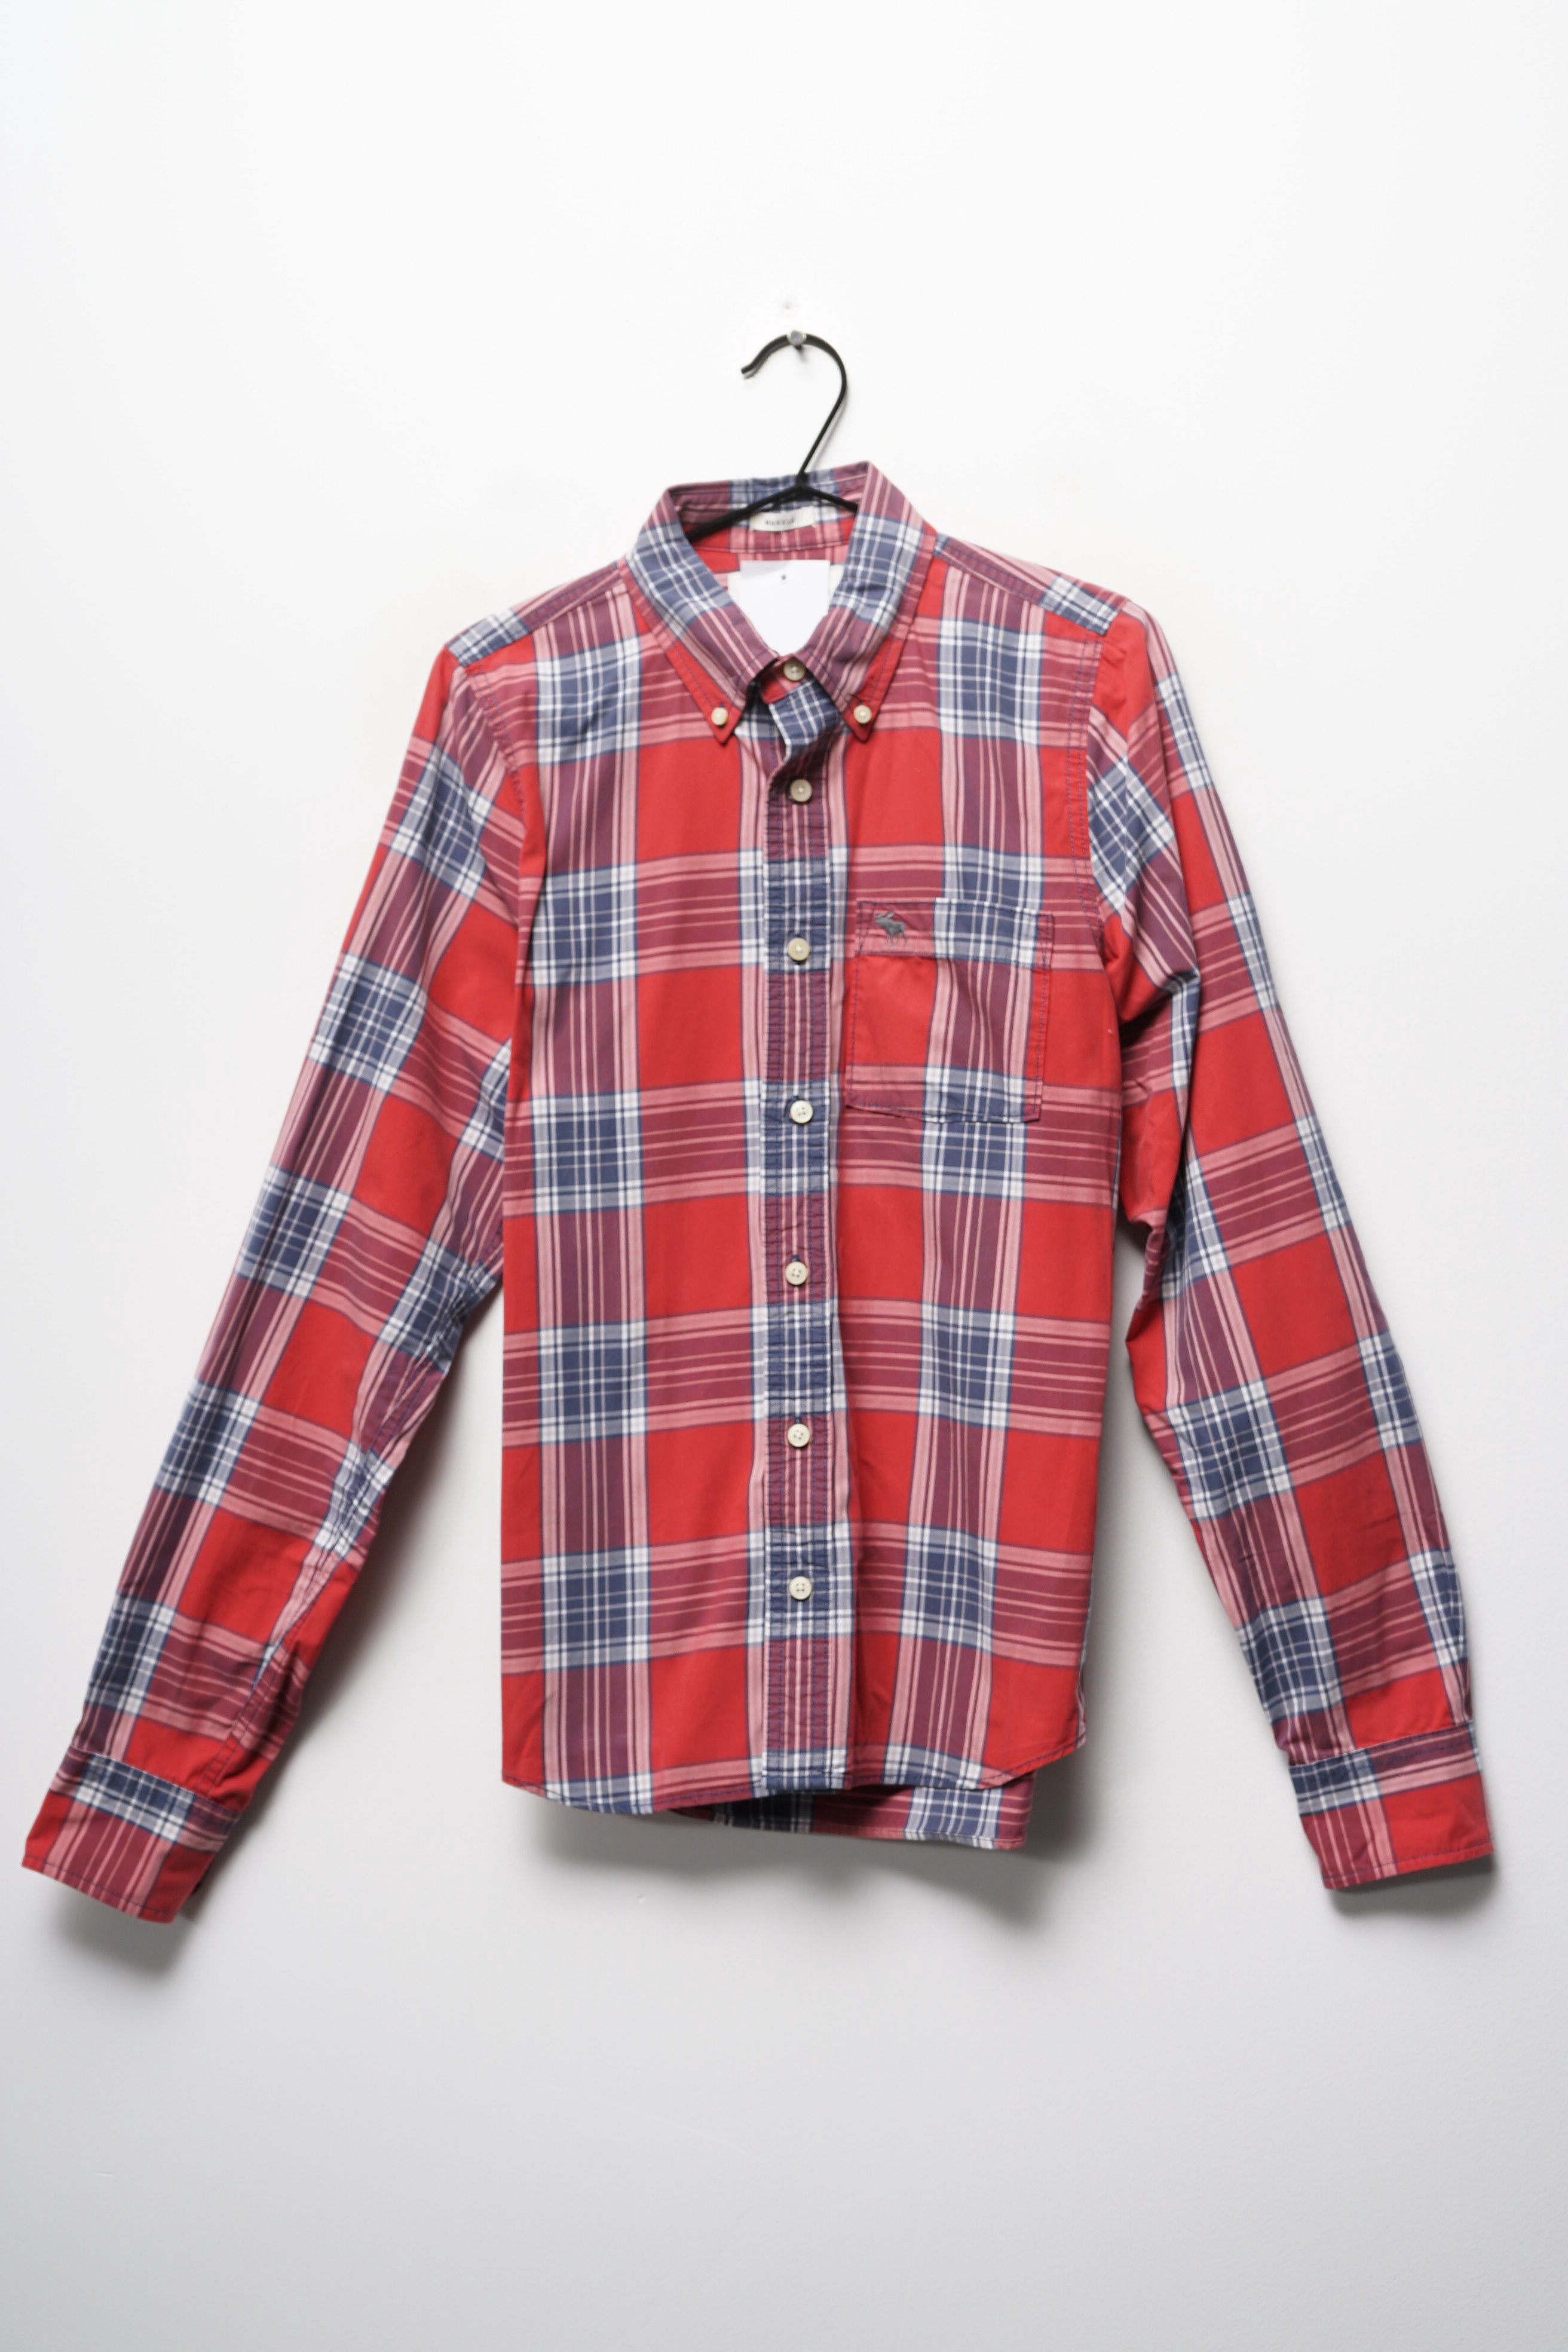 Abercrombie & Fitch Hemd Rot Gr.M